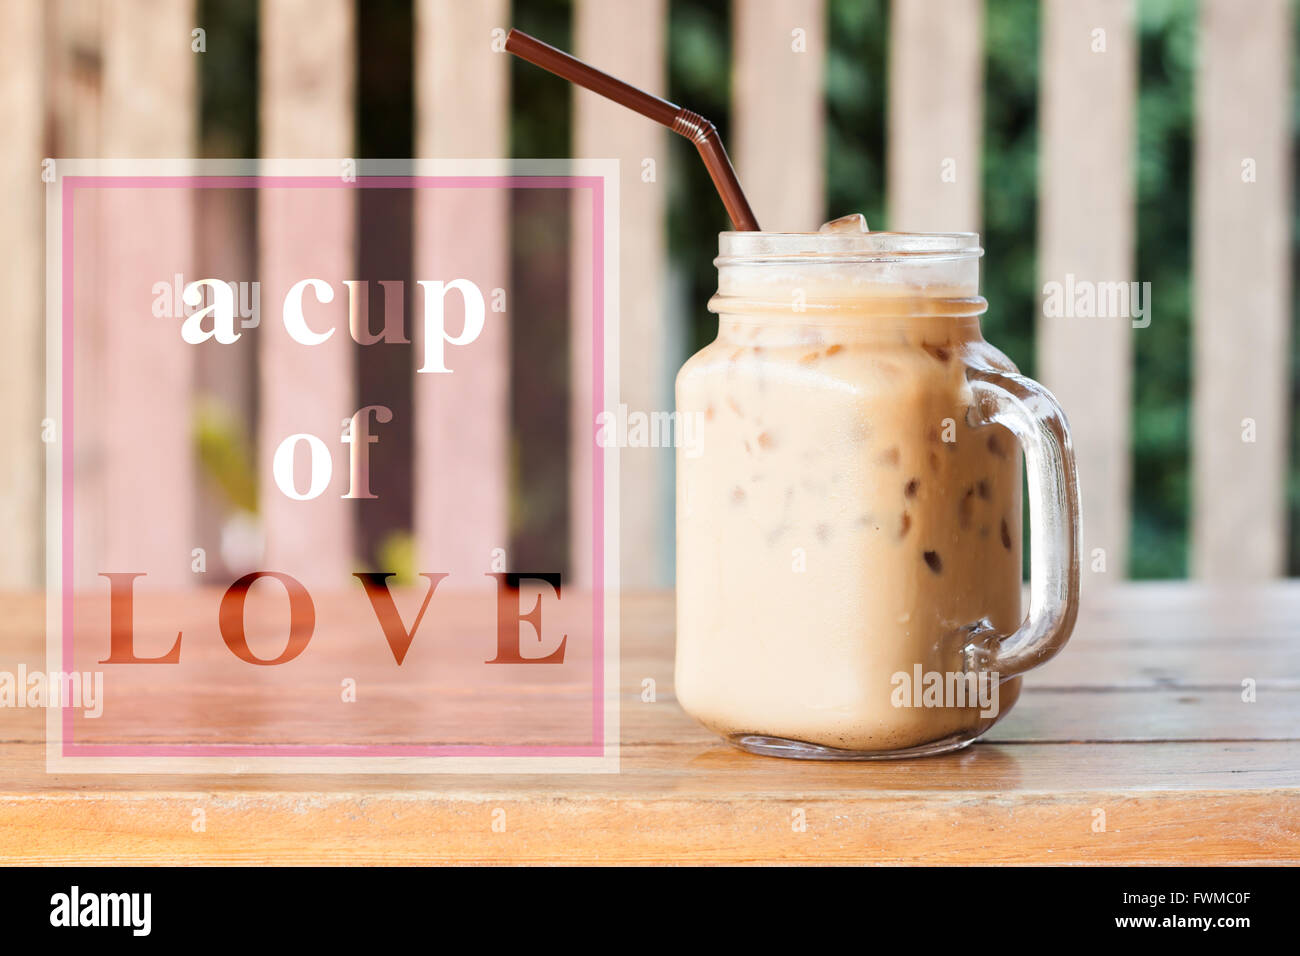 Inspirational Quote Of A Cup Of Love With Coffee Background